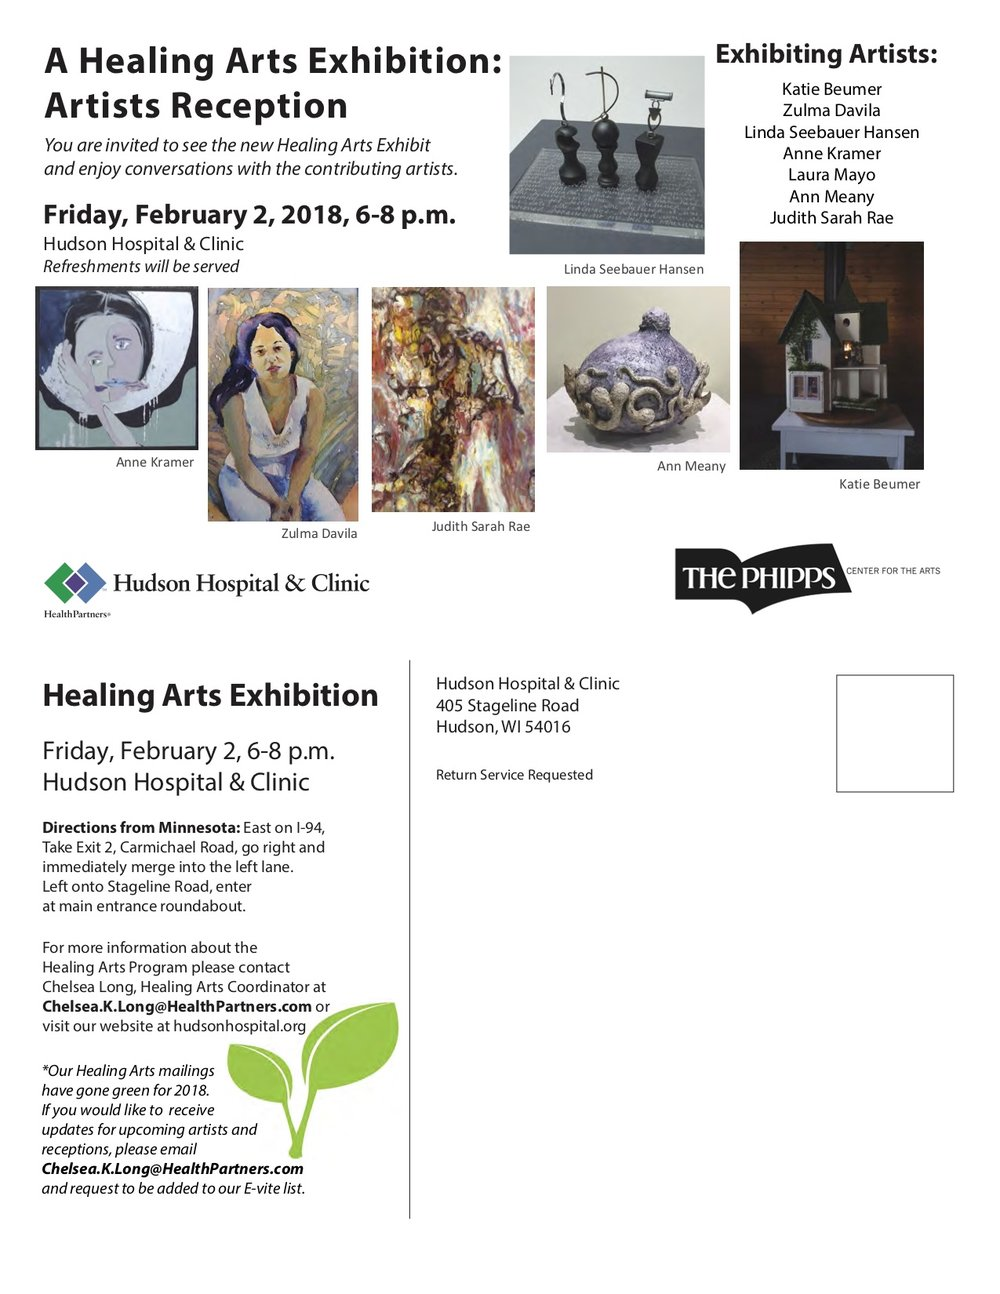 Group Exhibition - November 8, 2017 – February 4, 2018Hudson Hospital & Clinic, Hudson, WI